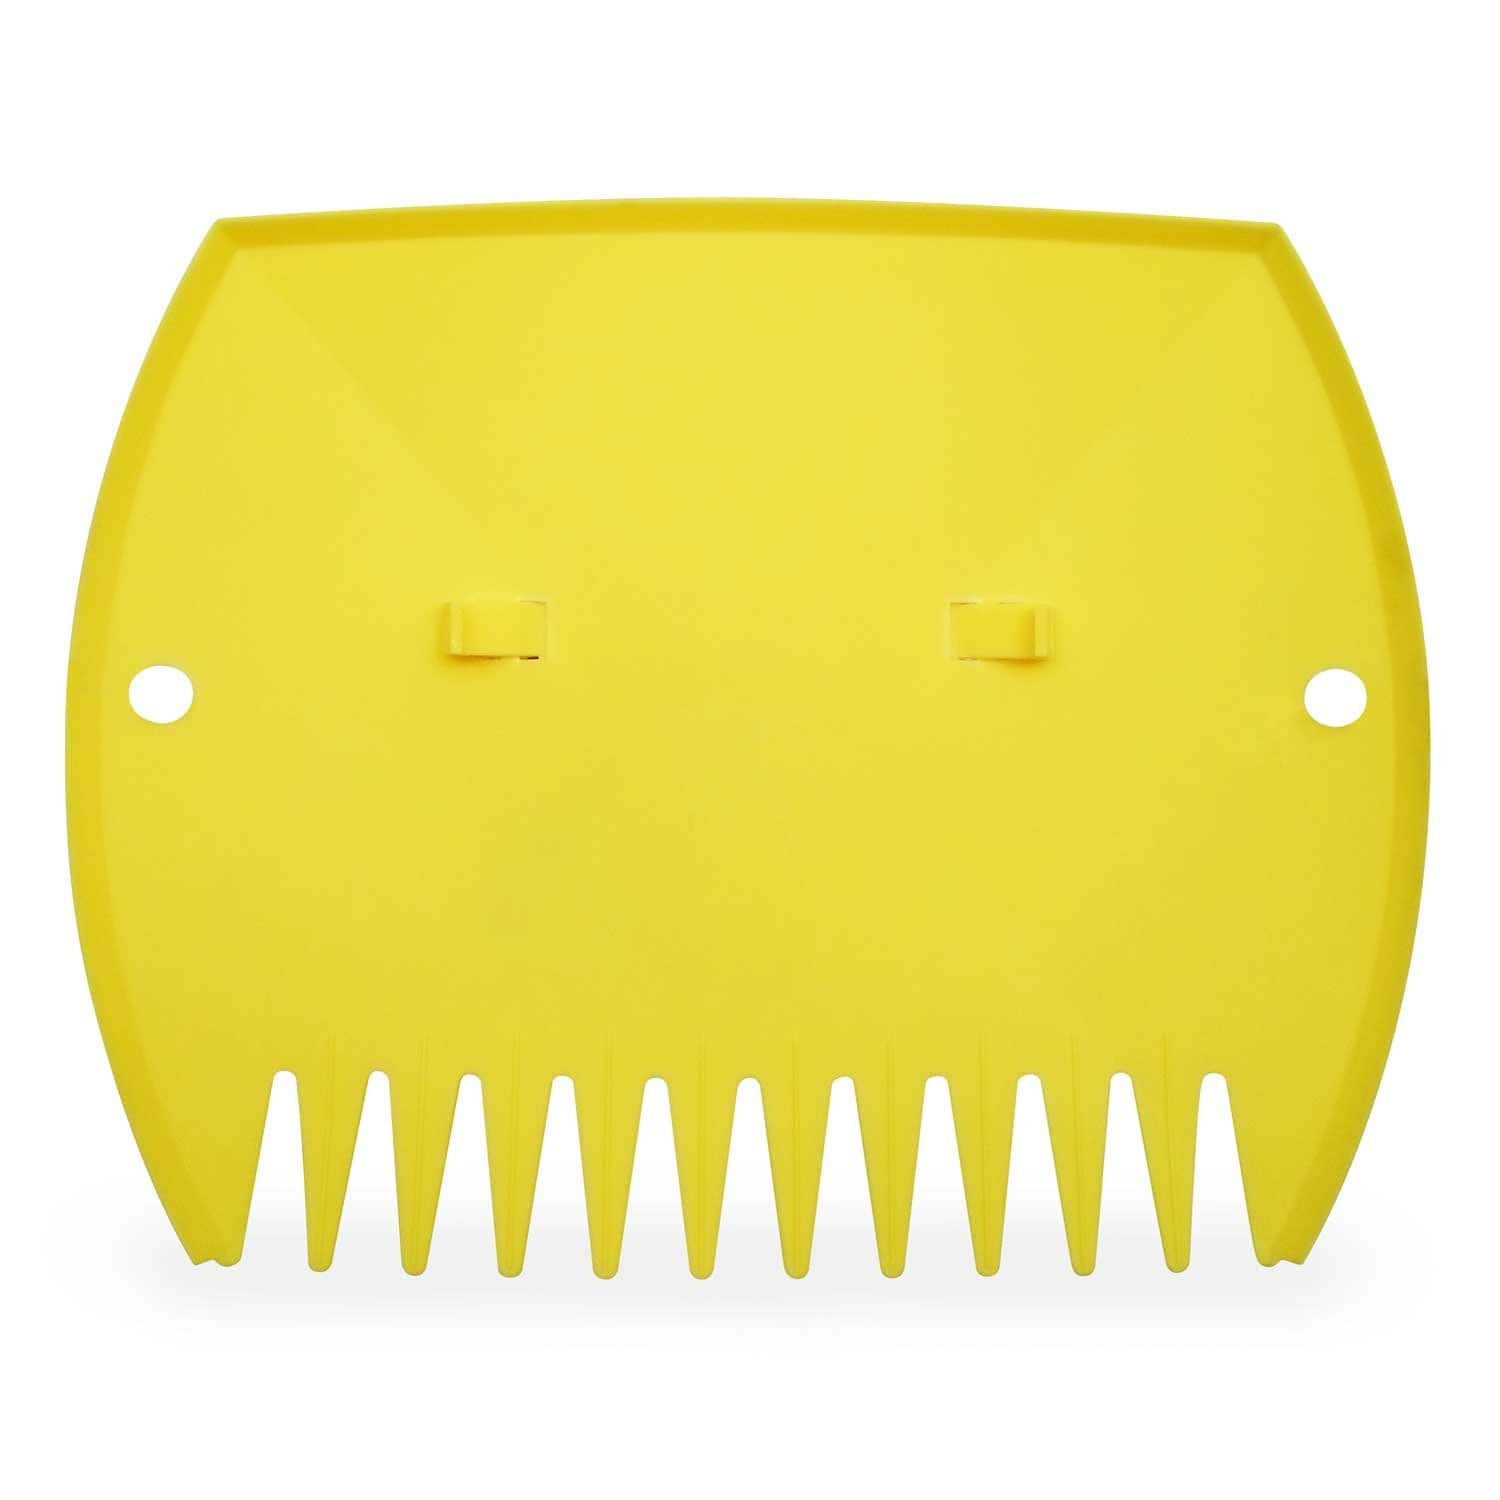 Garden and Yard Leaf Scoops Hand Rakes $13.99